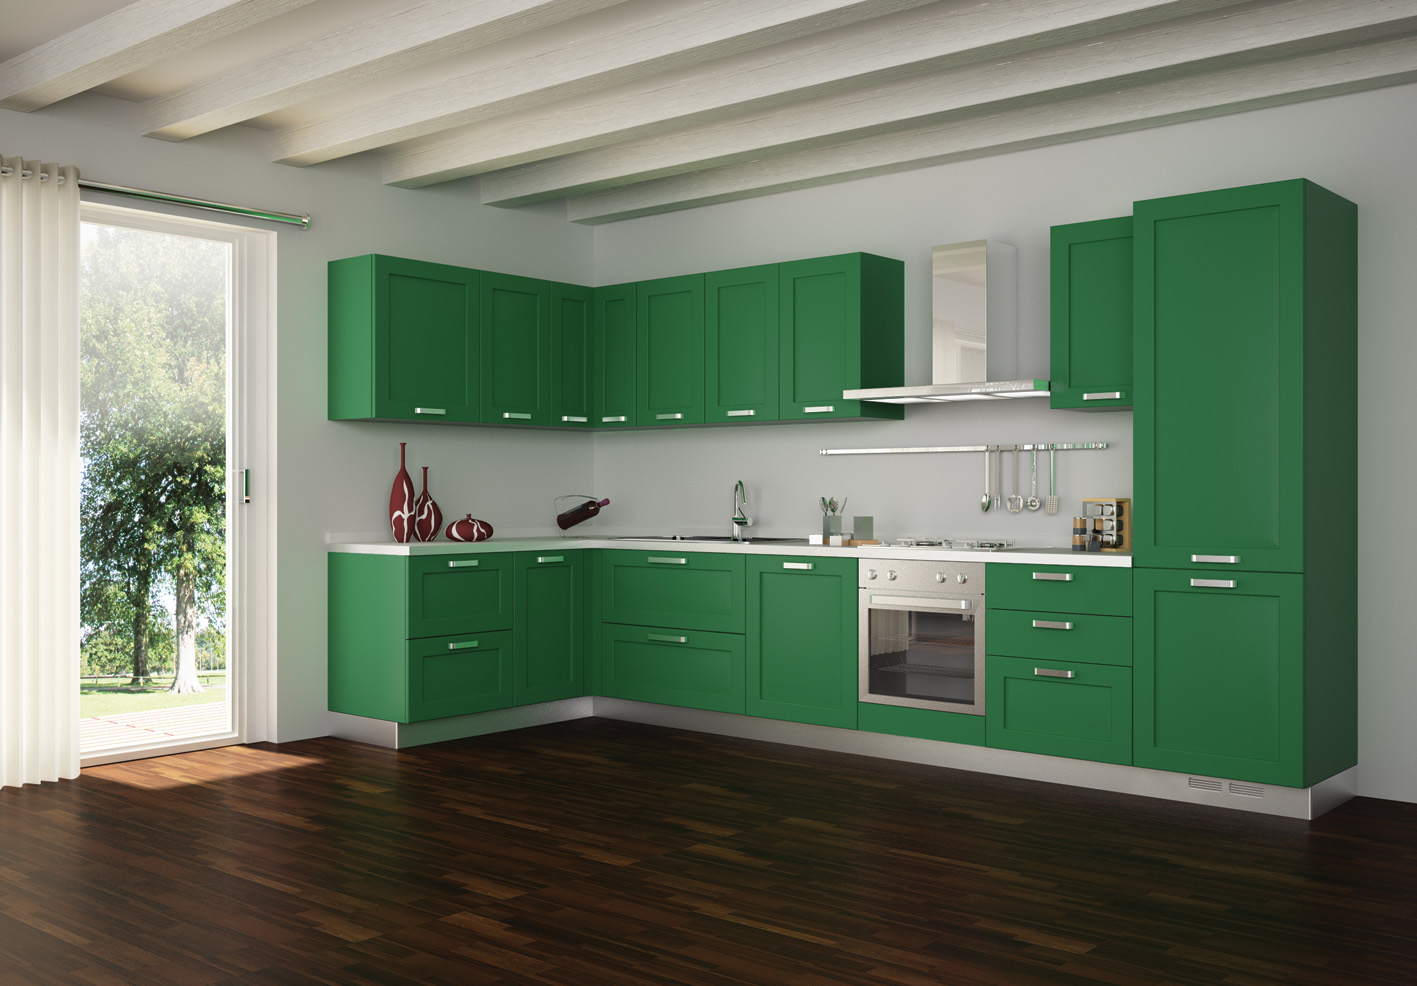 amazing-green-theme-modern-kitchen-design-bright-colors-interior-wood-texture-floor-white-wall-white-curtain-stainless-stell-spon-plate